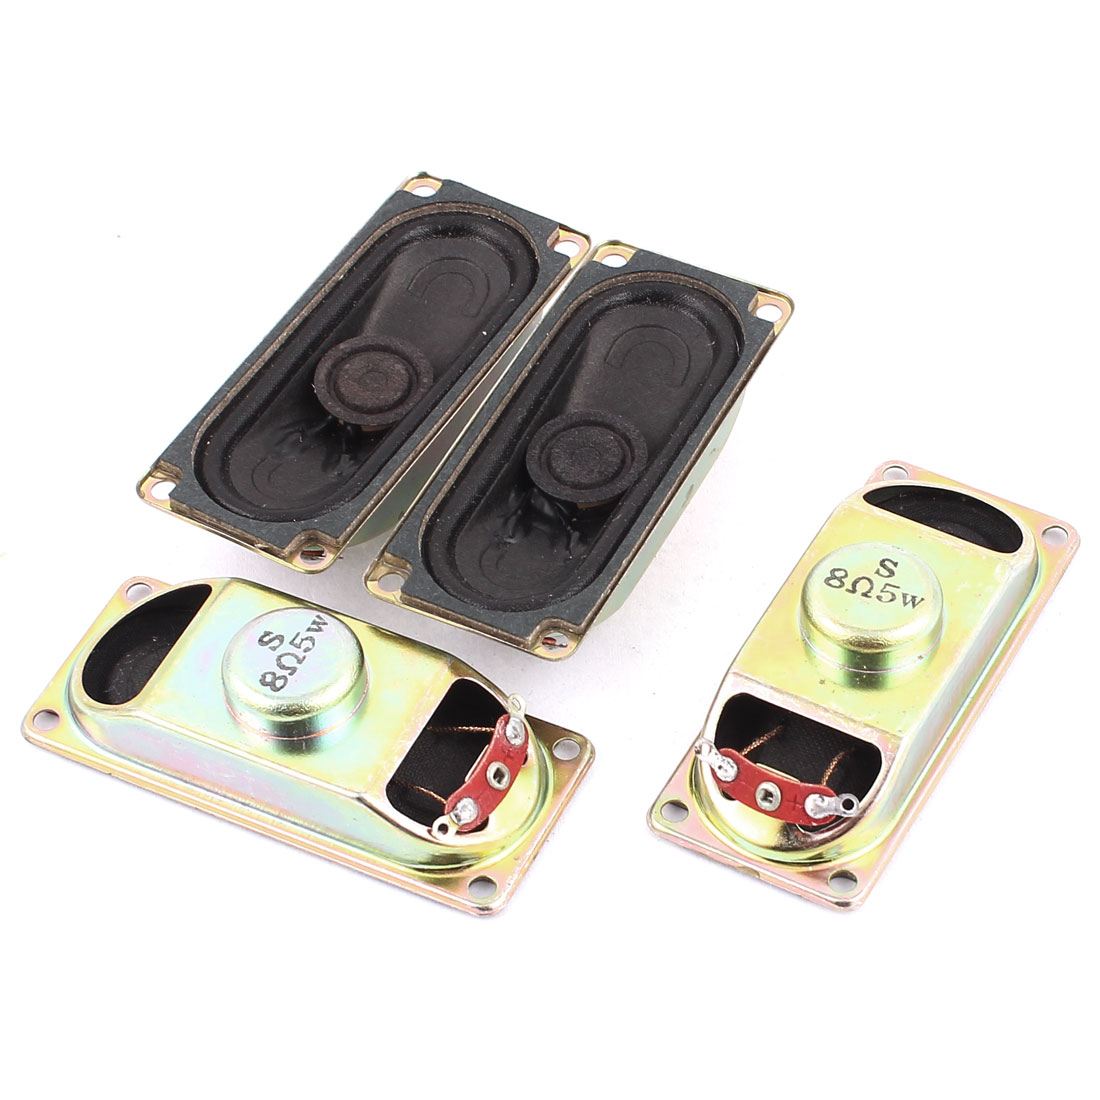 5W 8 Ohm Internal Magnet Speaker Loudspeaker 3 x 7 x 1.8cm 4Pcs